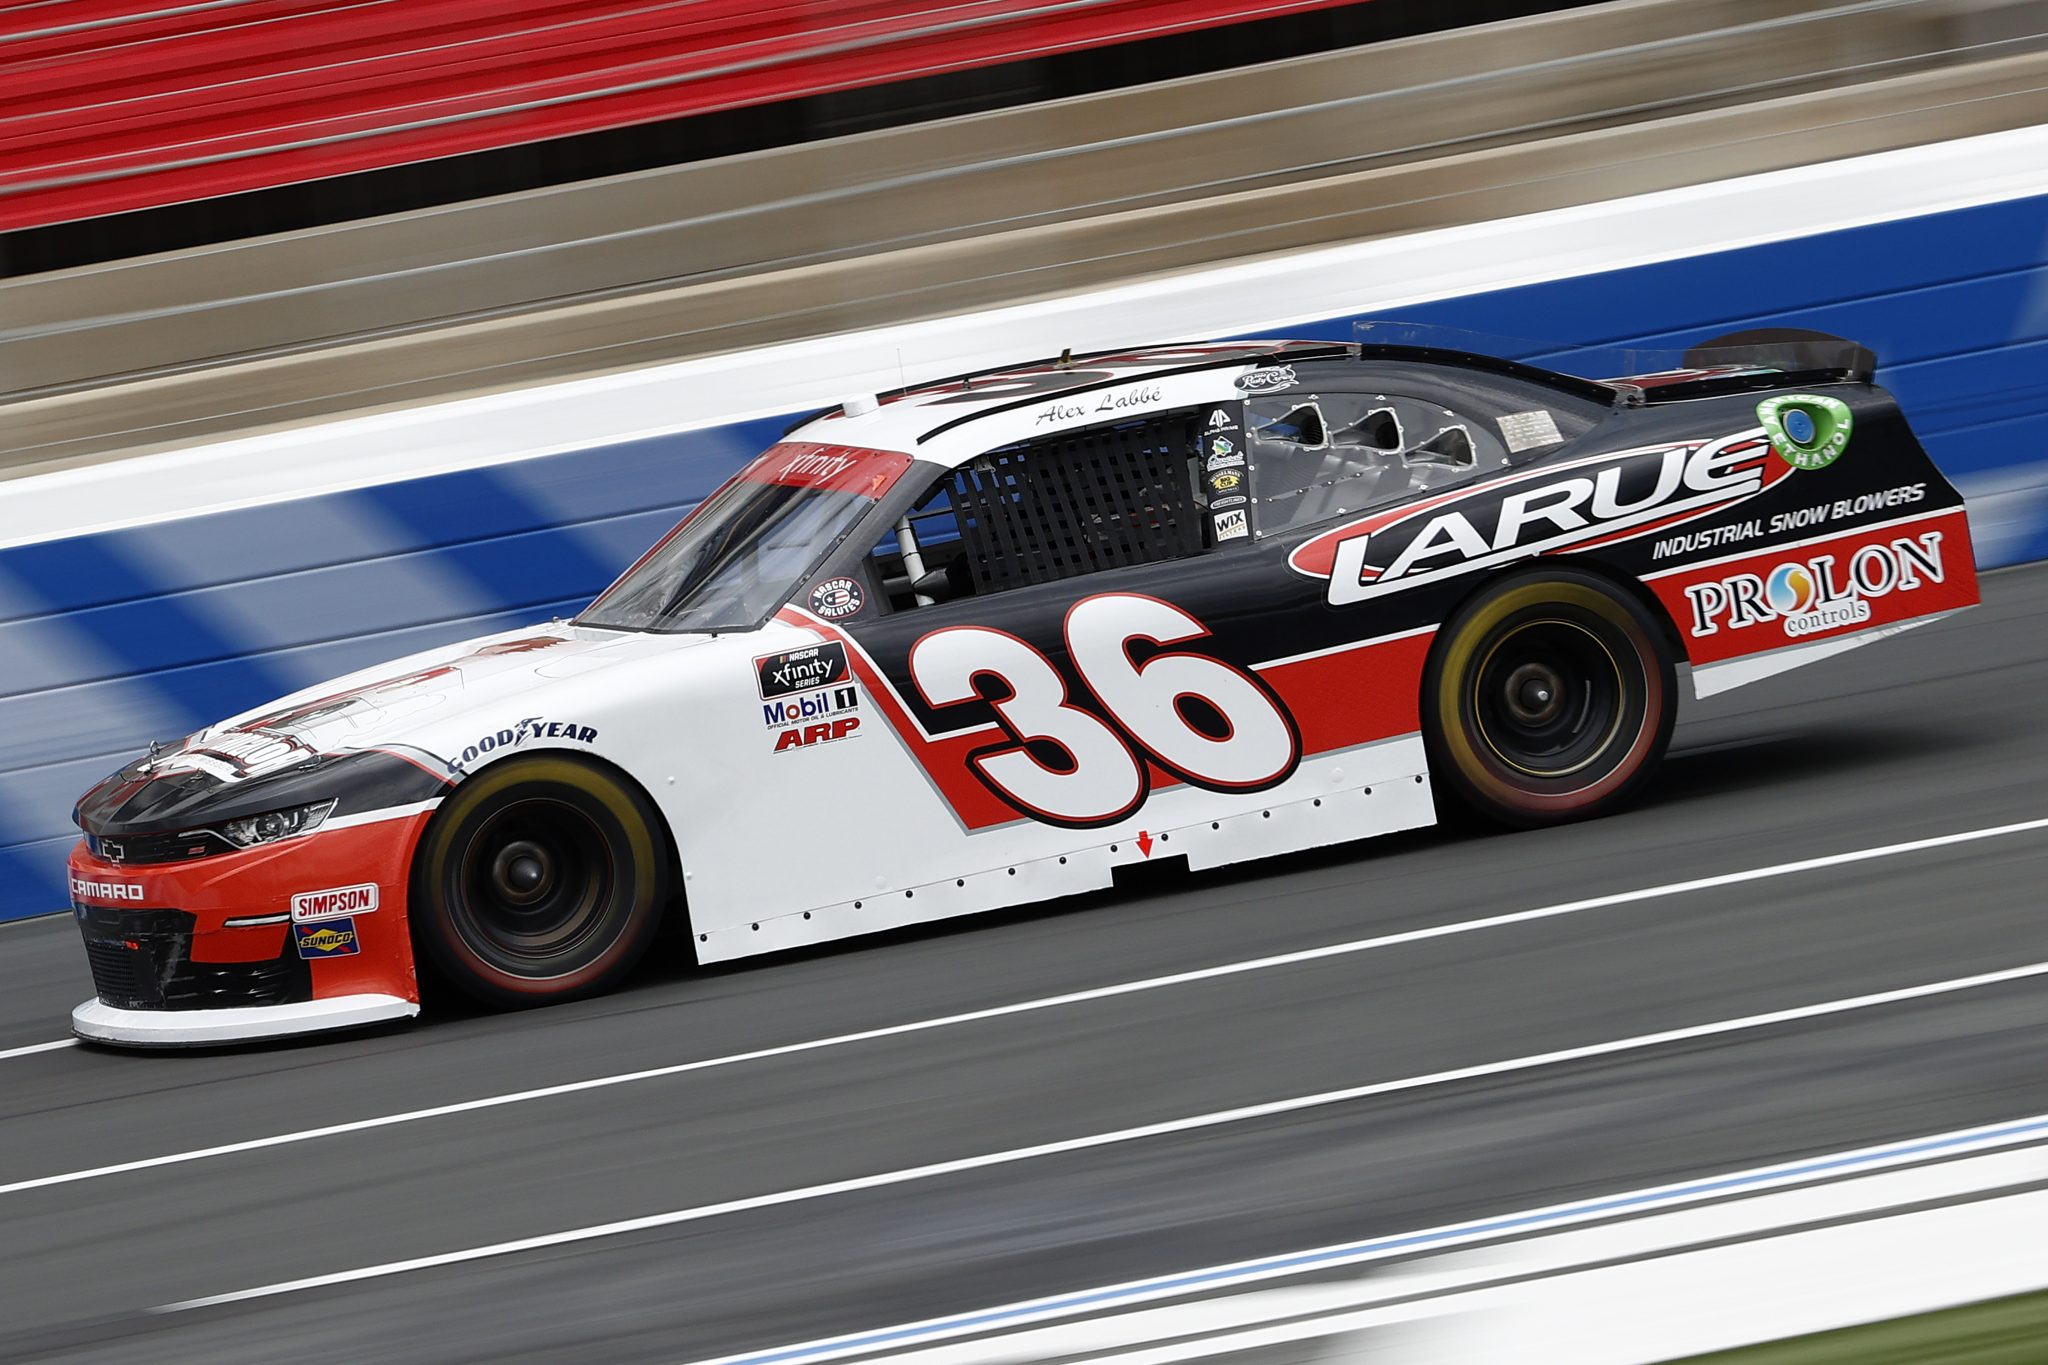 CONCORD, NORTH CAROLINA - MAY 28: Alex Labbe, driver of the #36 Larue Industrial Snowblowers Chevrolet, drives during practice for the NASCAR Xfinity Series Alsco Uniforms 300 at Charlotte Motor Speedway on May 28, 2021 in Concord, North Carolina. (Photo by Maddie Meyer/Getty Images) | Getty Images